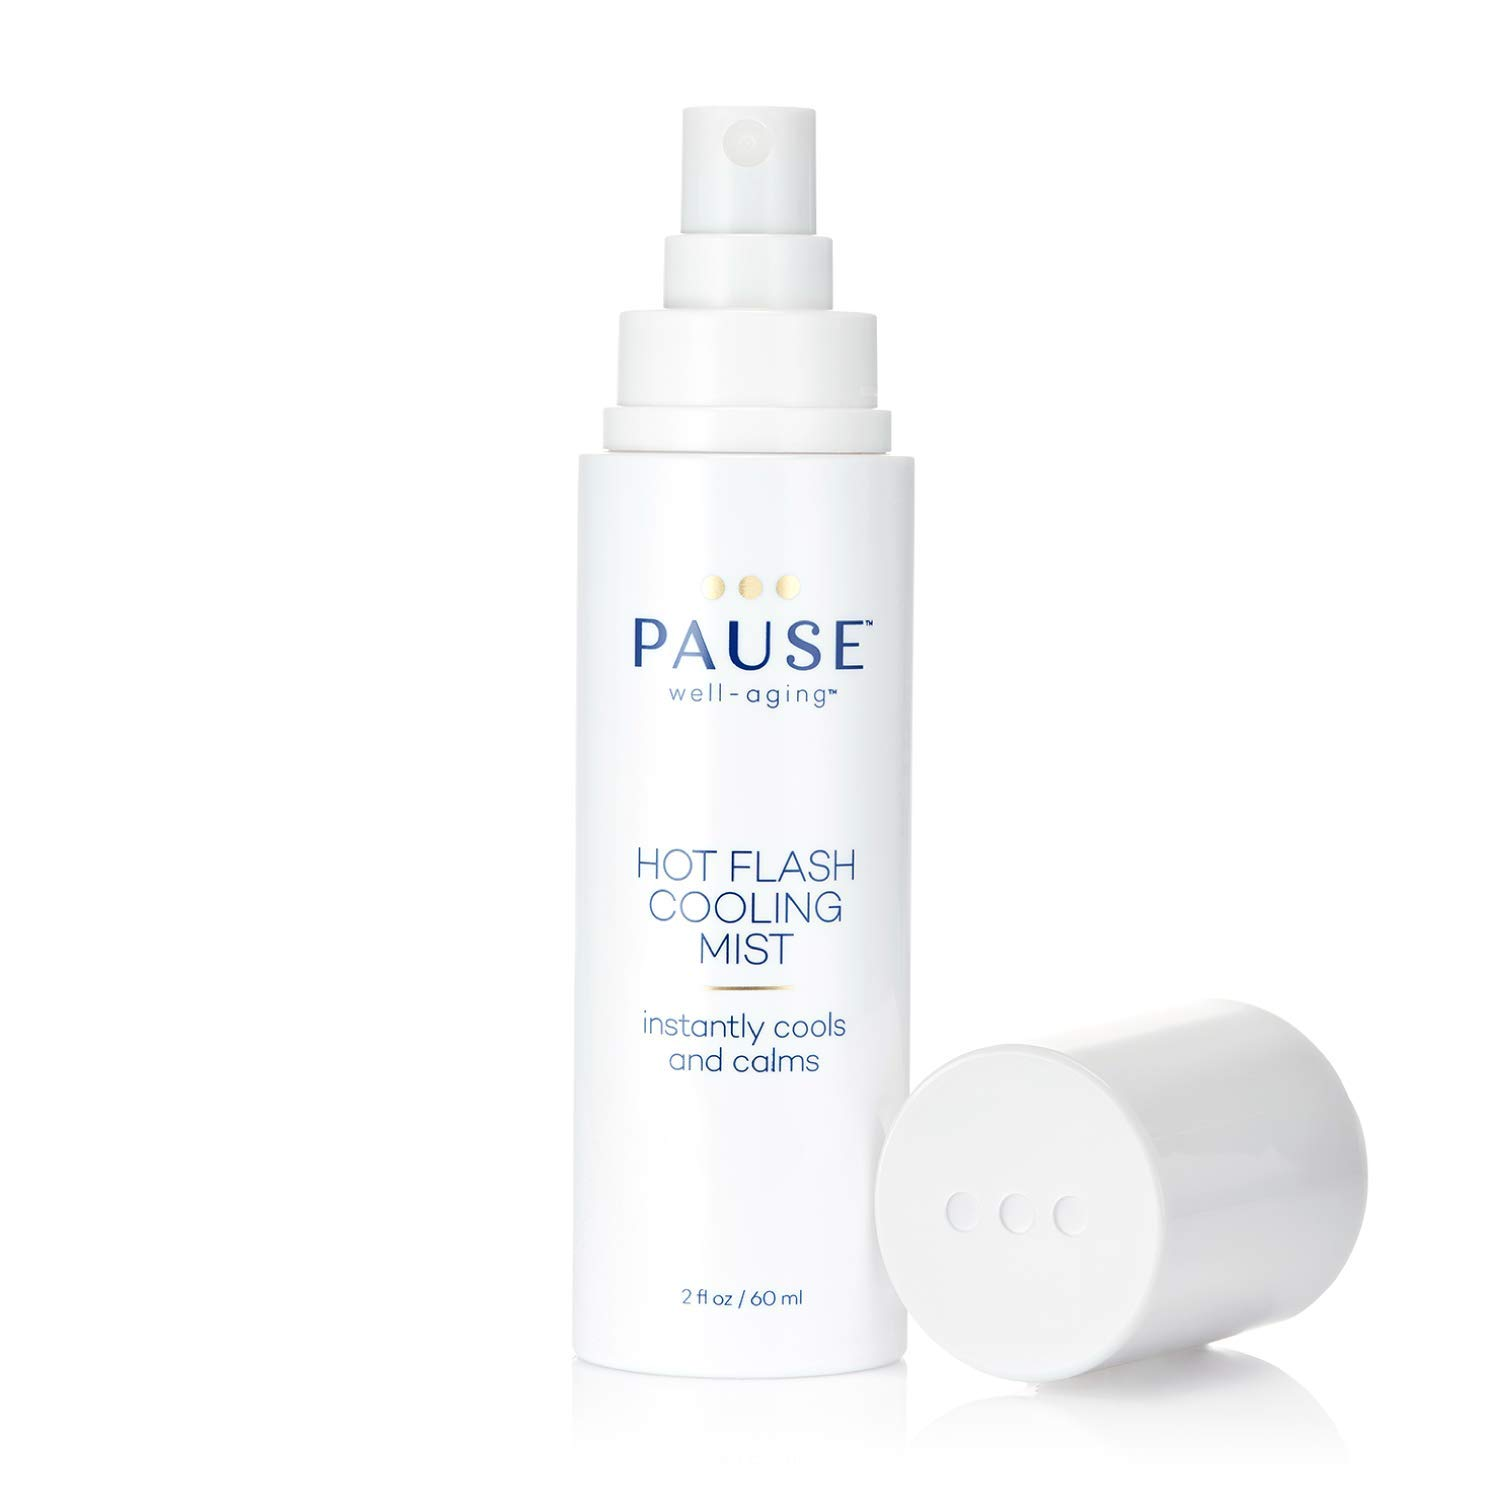 Pause Hot Flash Cooling Mist